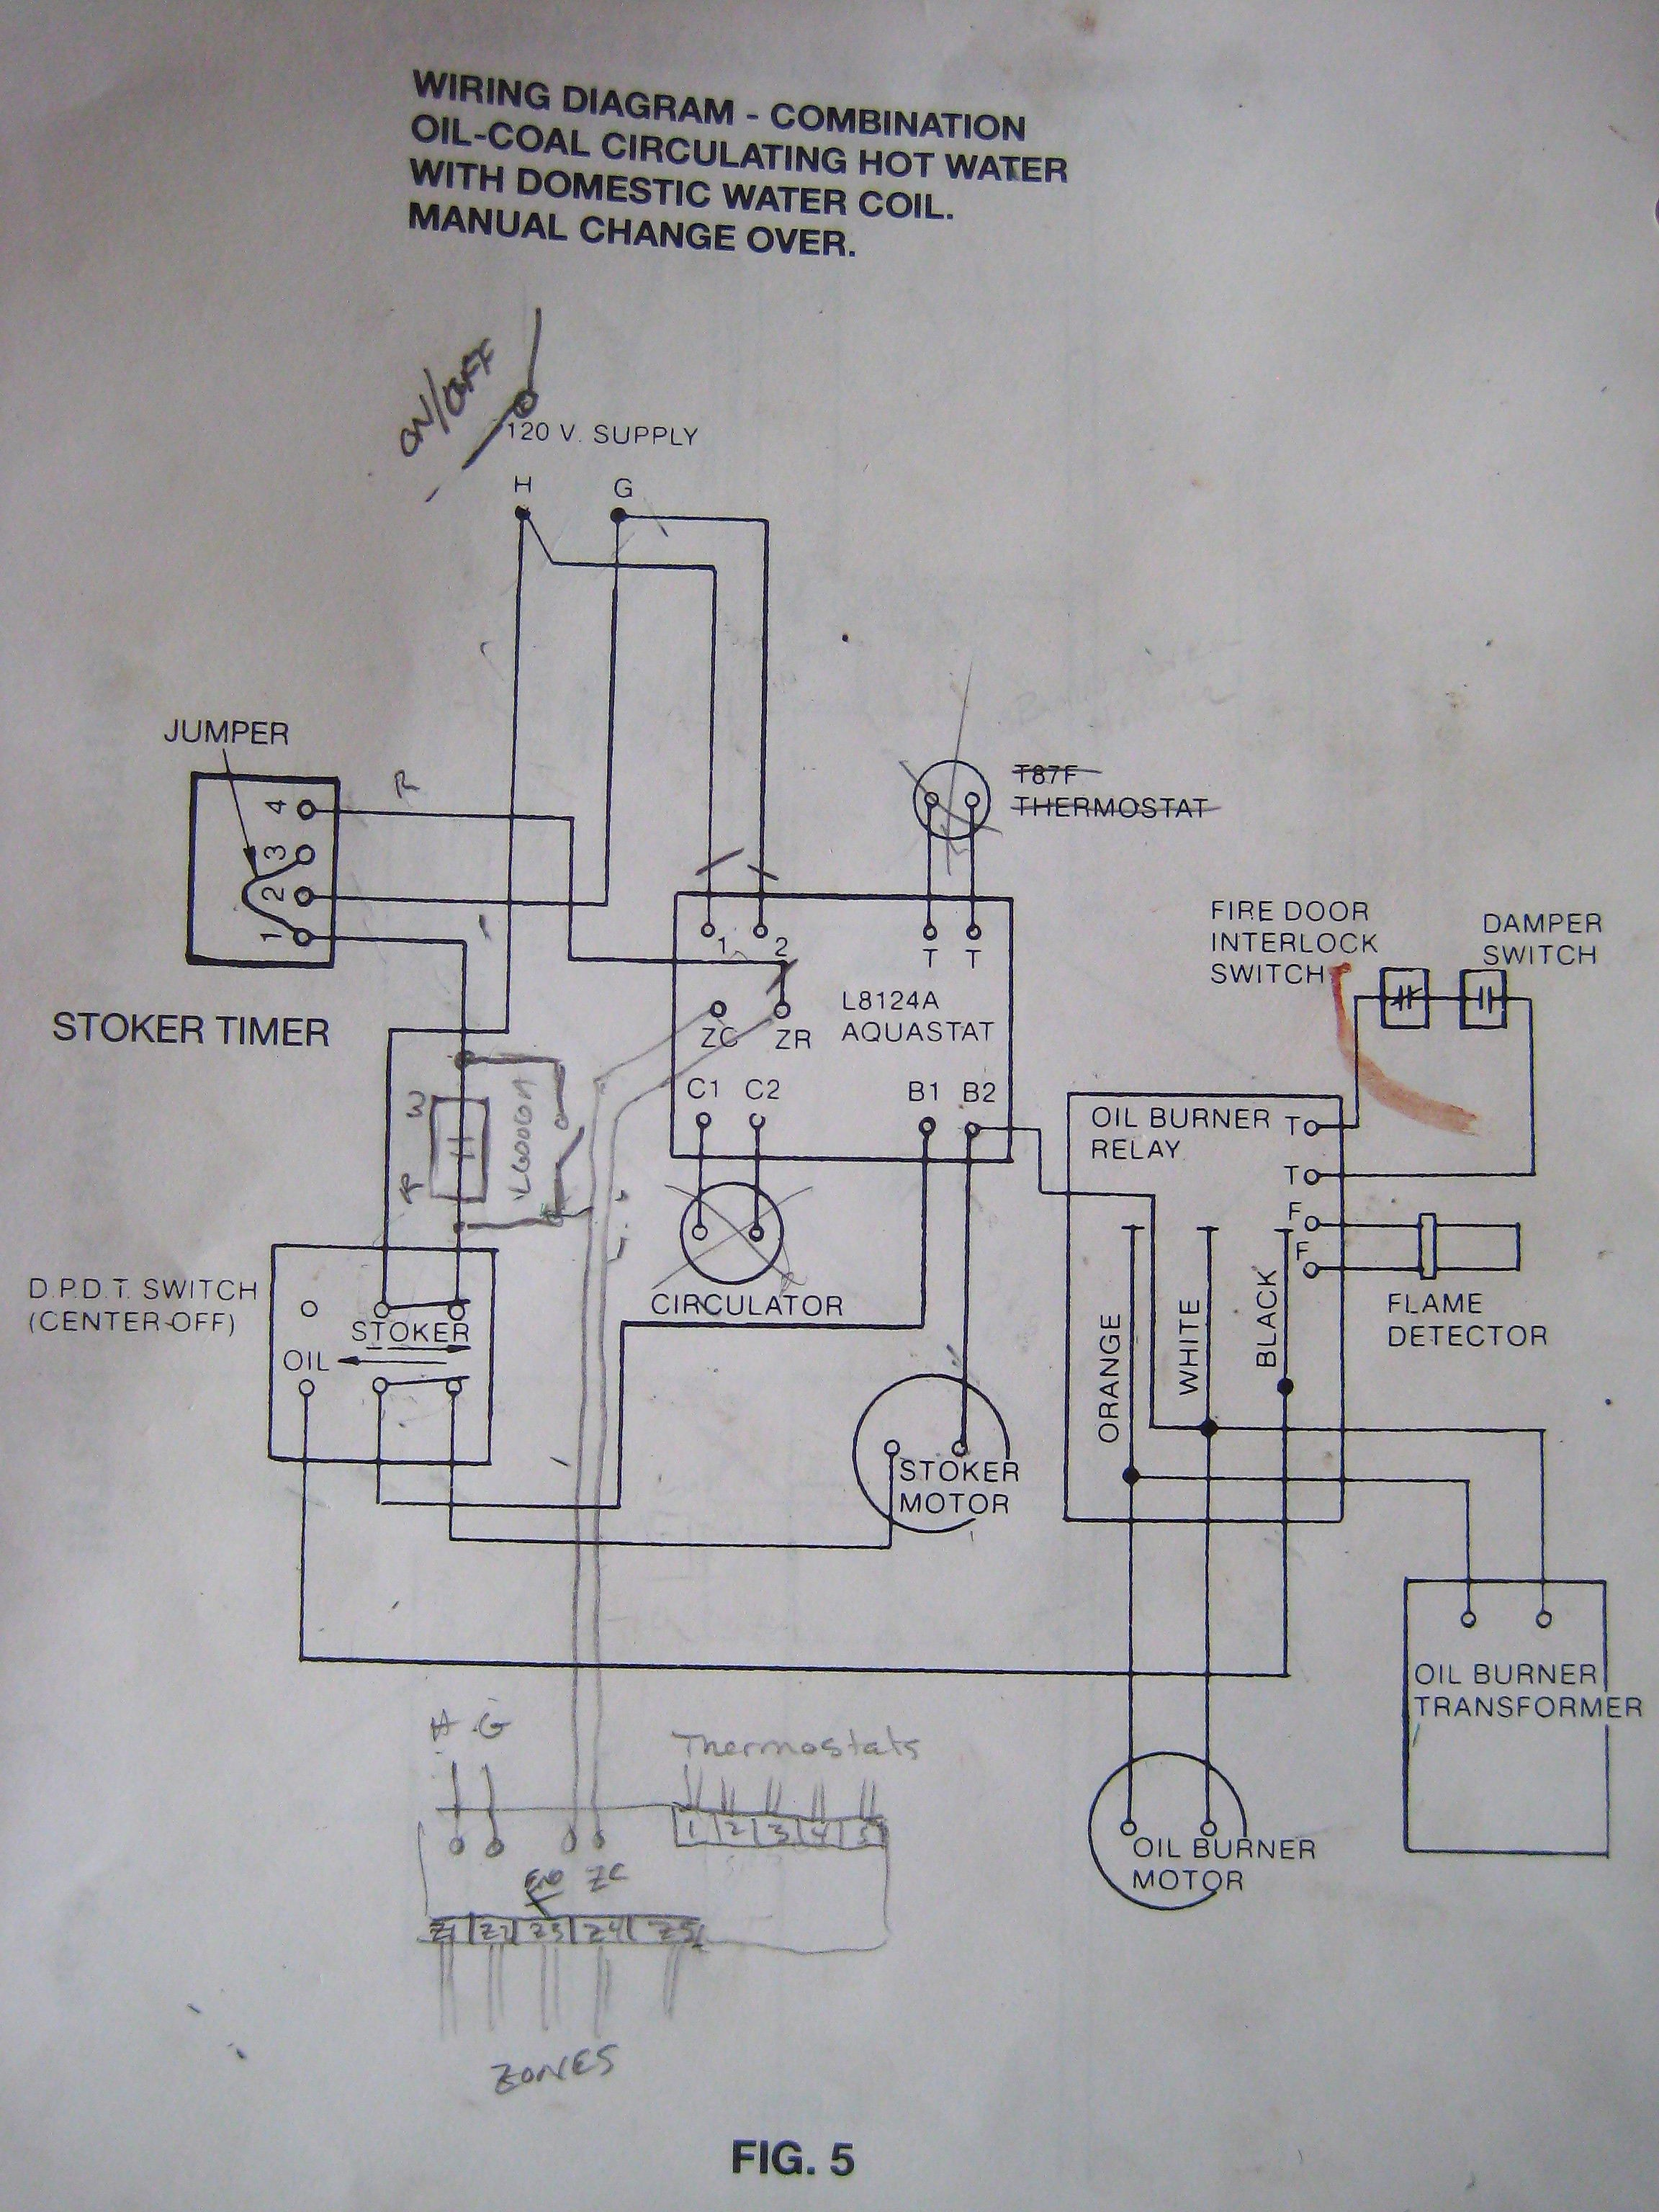 WRG-9867] Honeywell Boiler Aquastat Wiring Diagram on